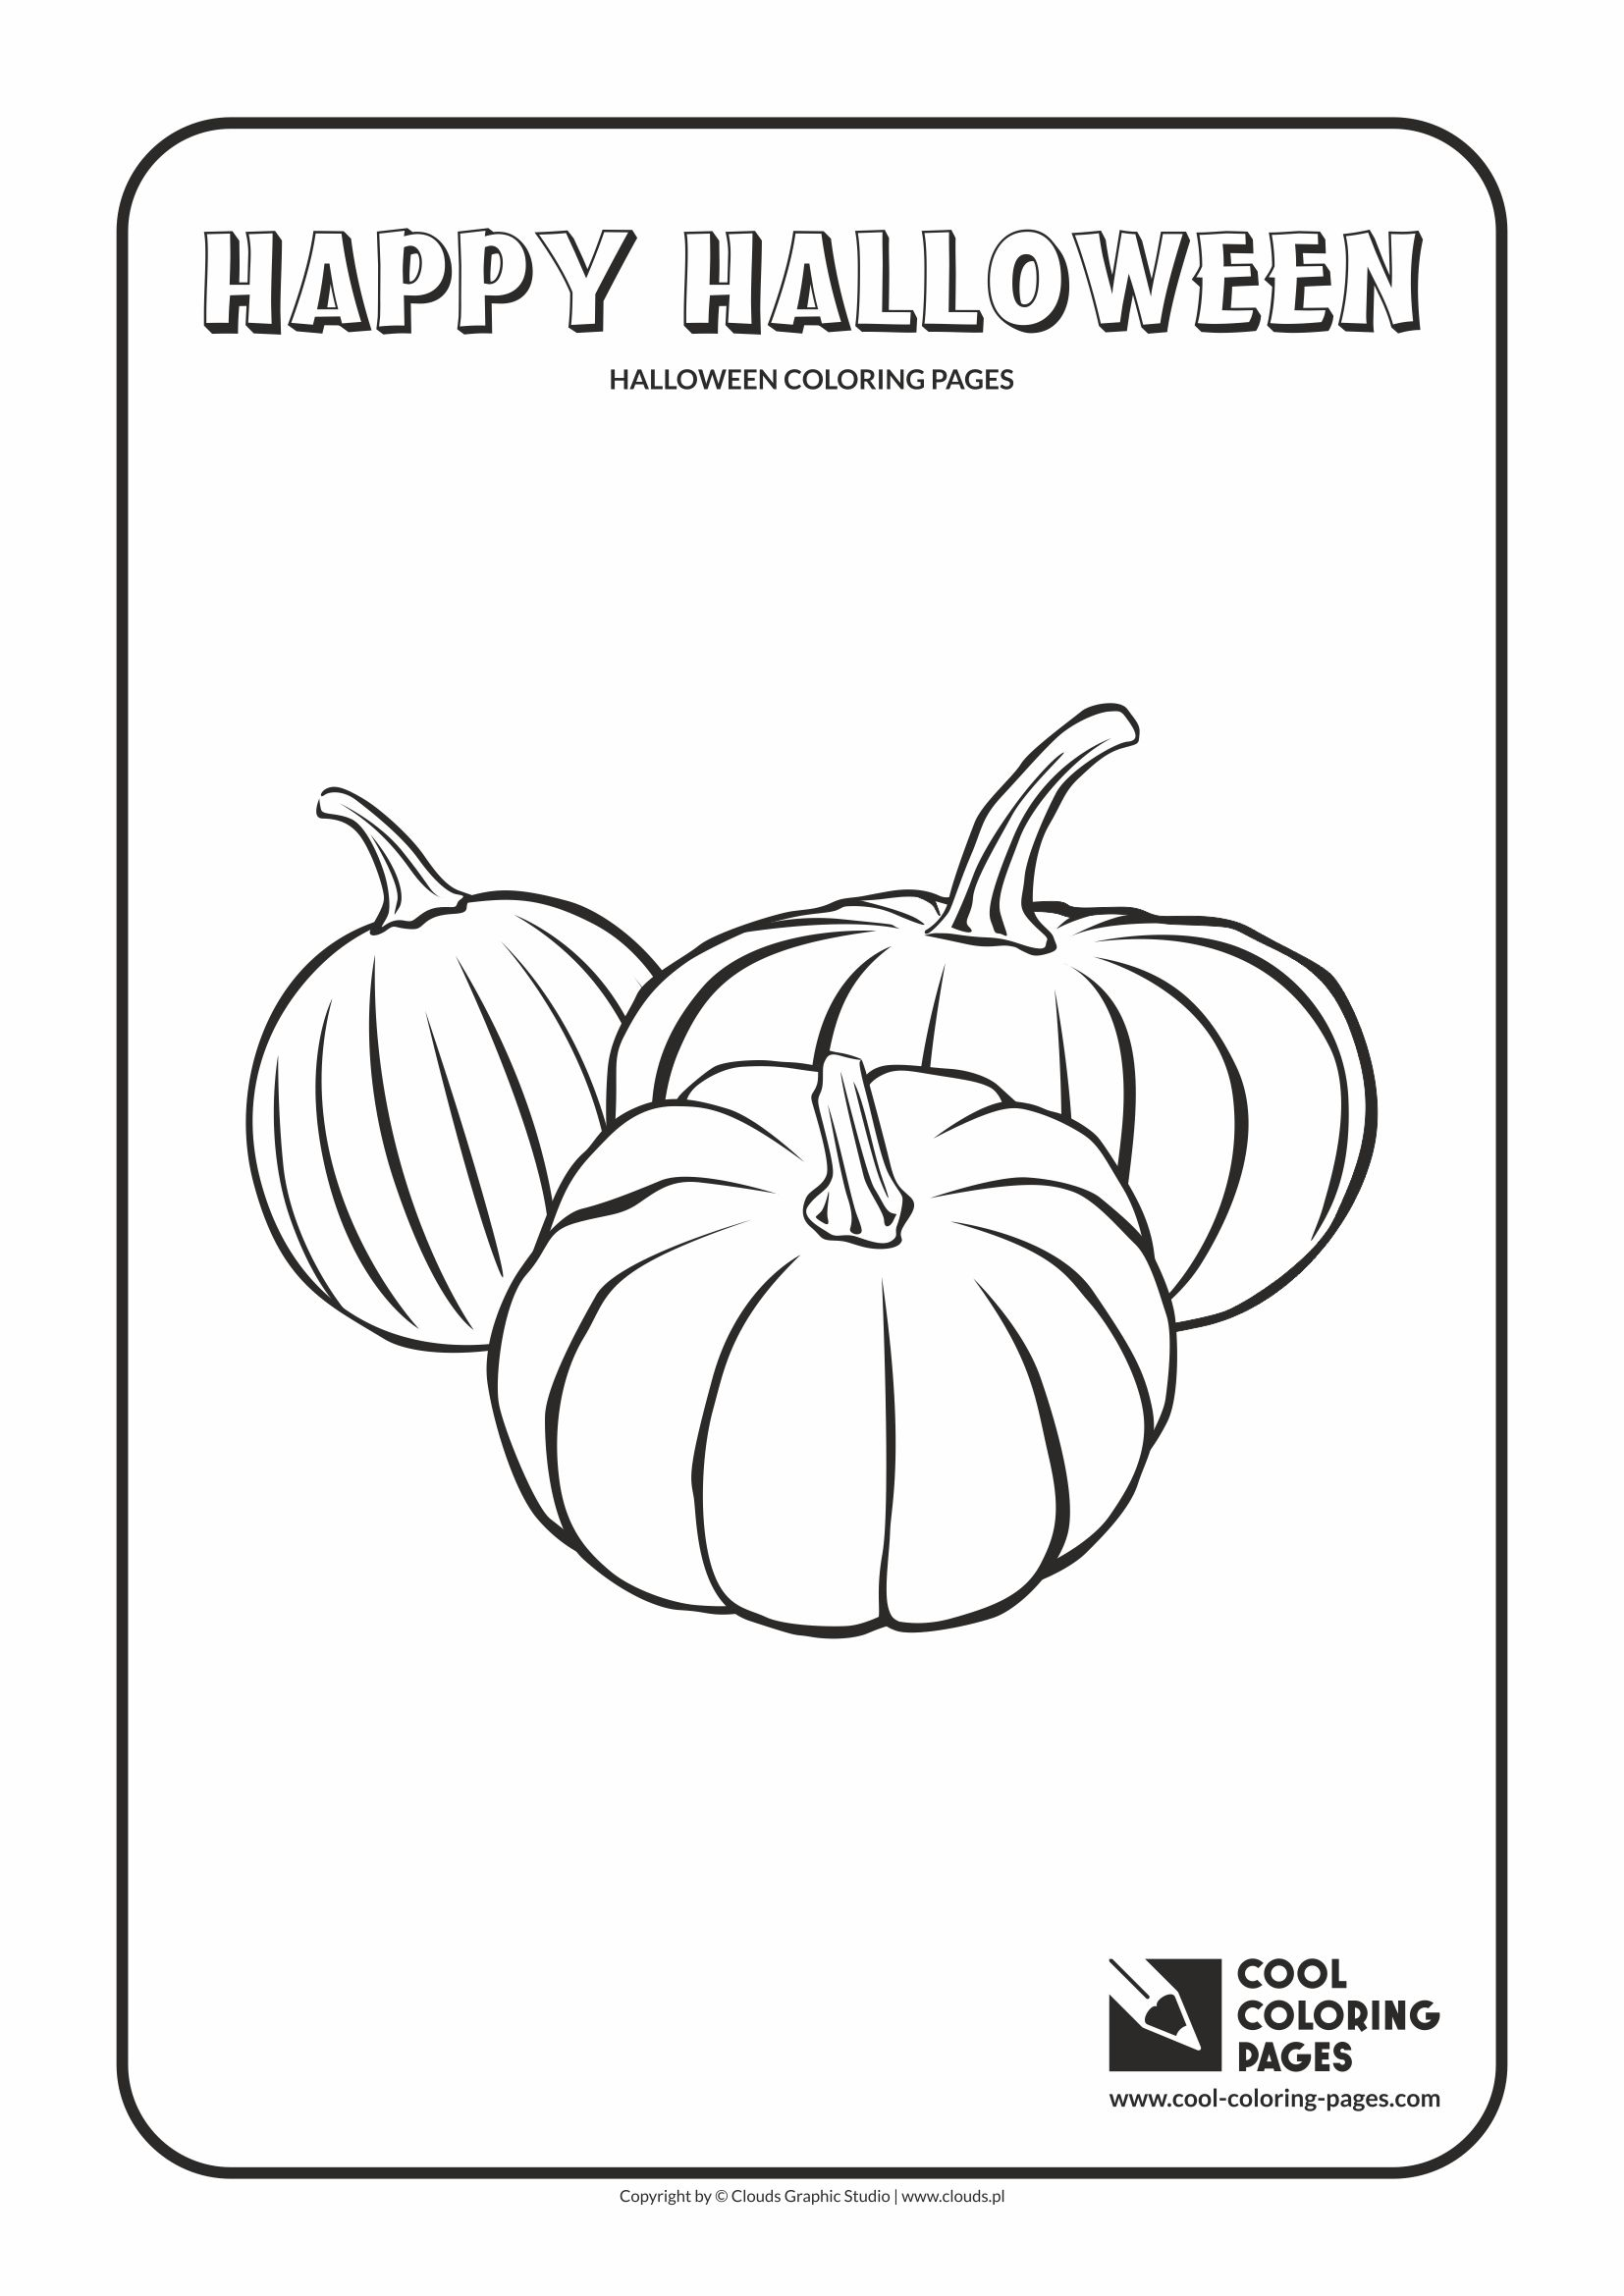 Cool Coloring Pages - Holidays / Halloween pumpkins / Coloring page with Halloween pumpkins